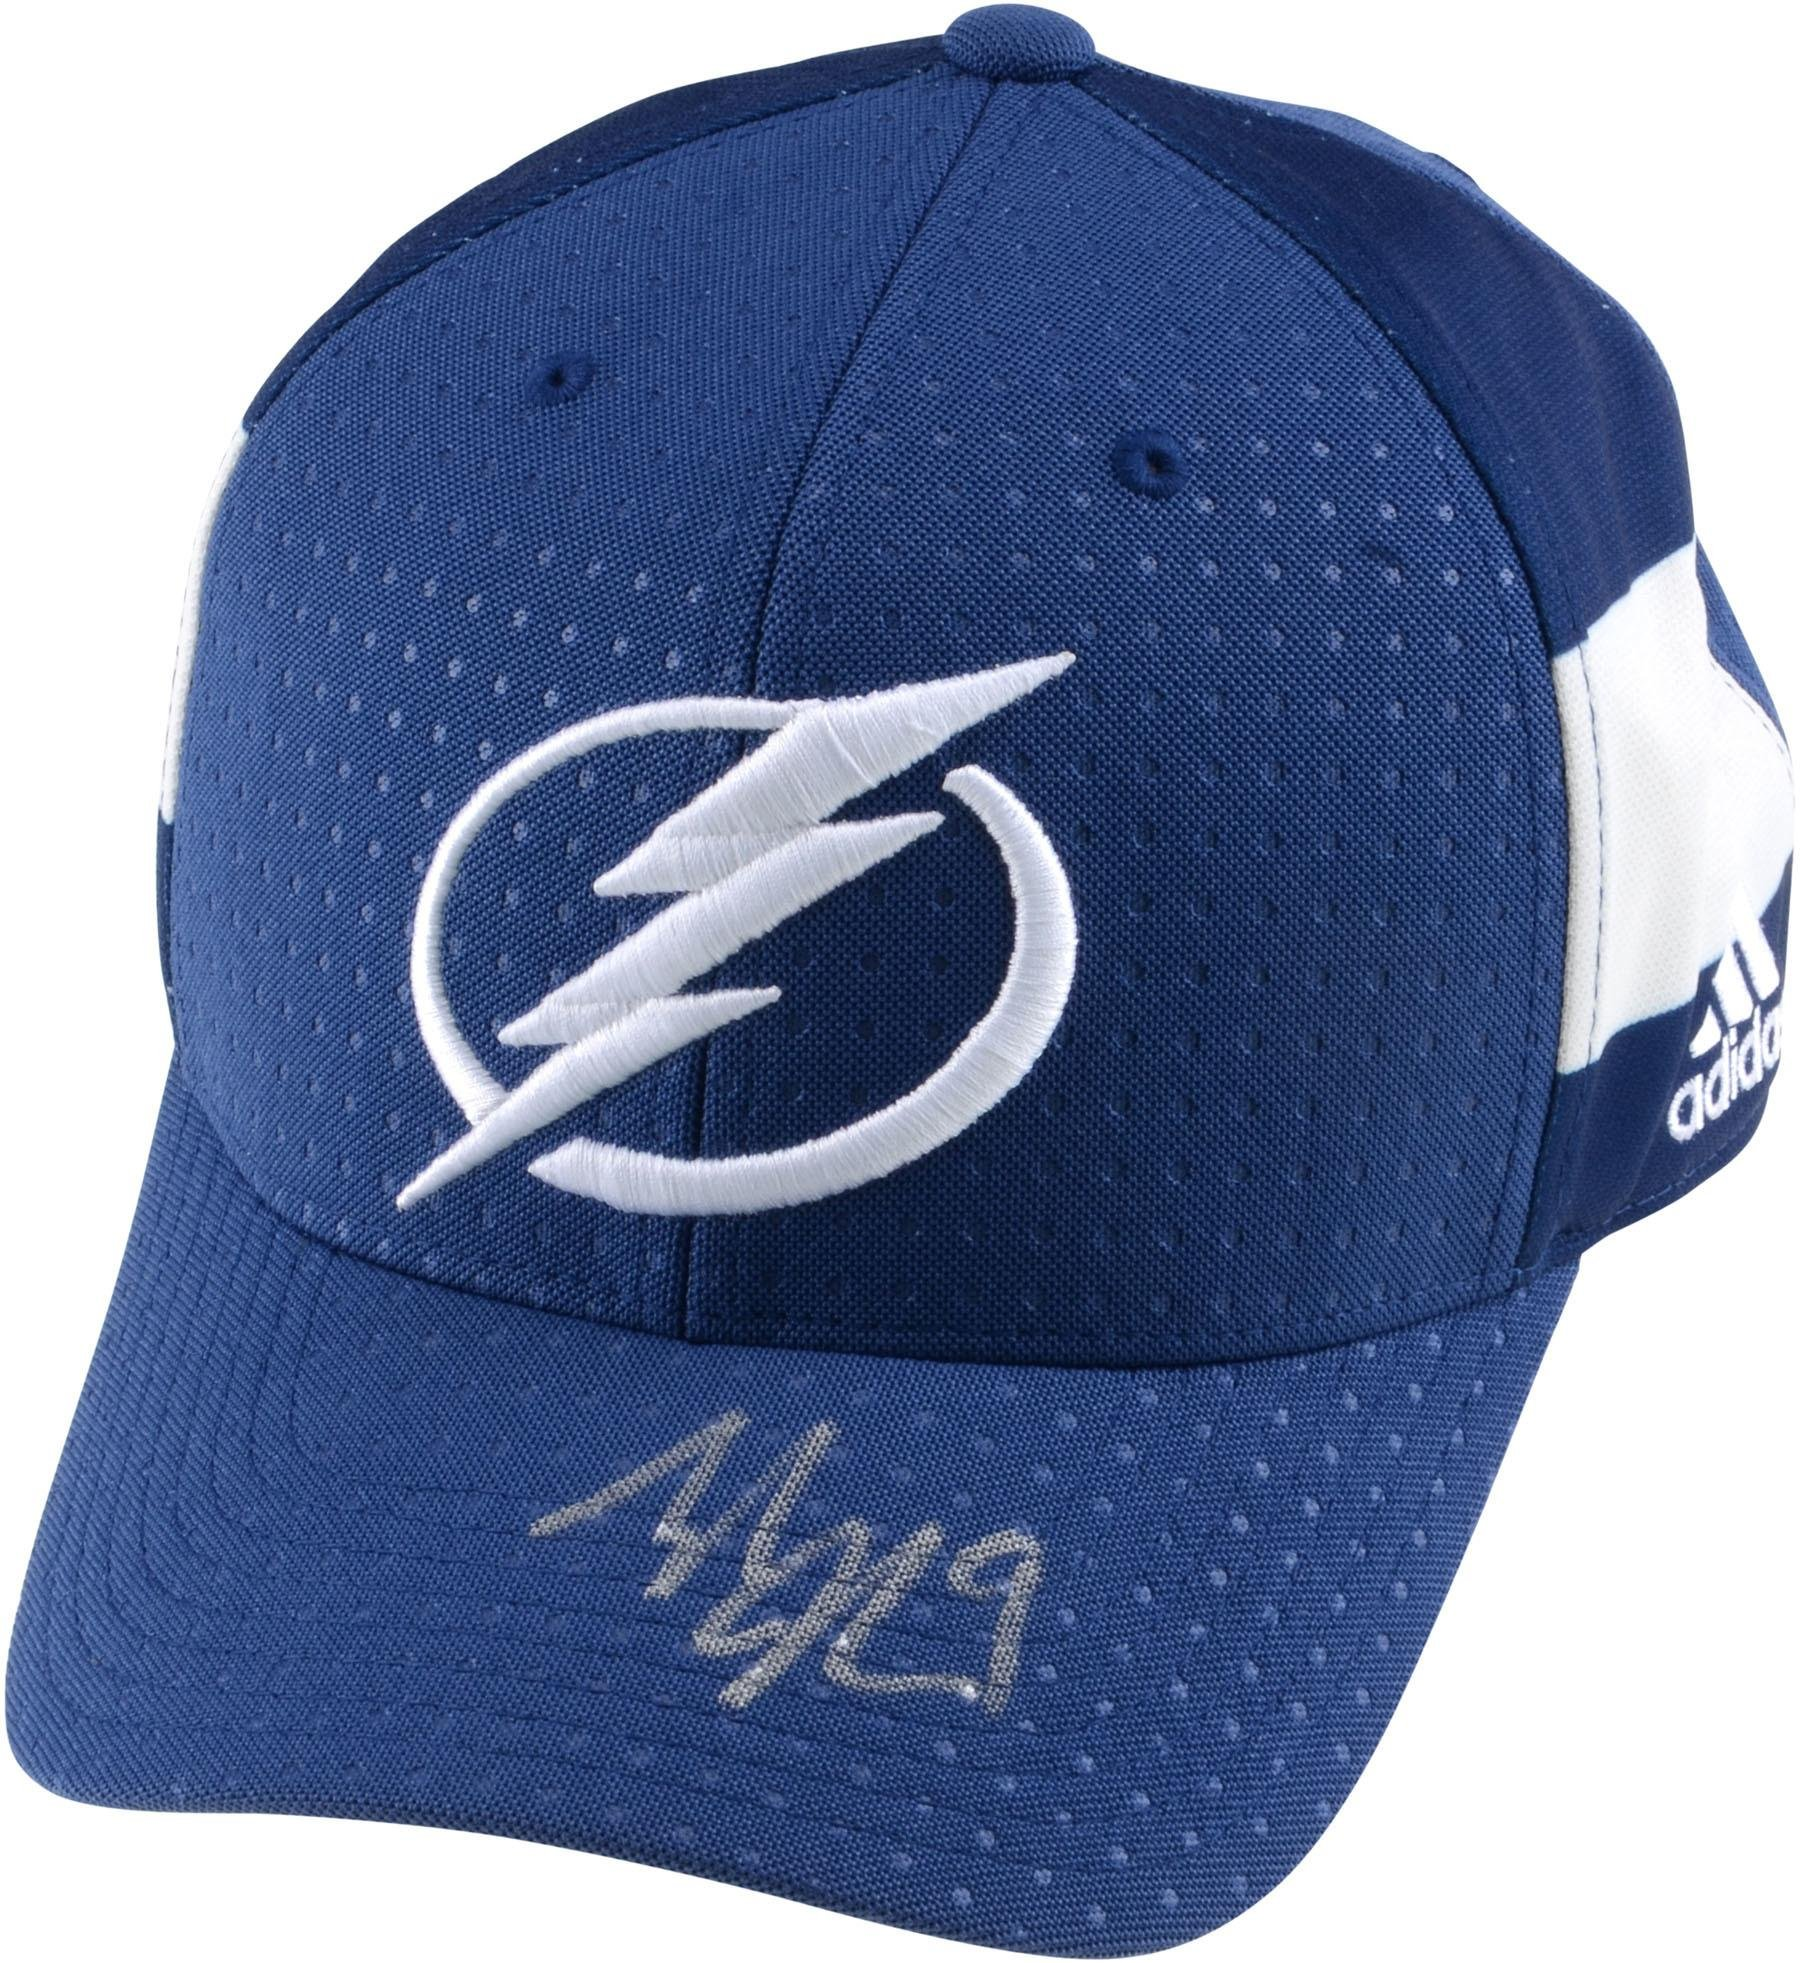 Tyler Johnson Tampa Bay Lightning Autographed Adidas Cap Fanatics Authentic Certified Autographed NHL Hats